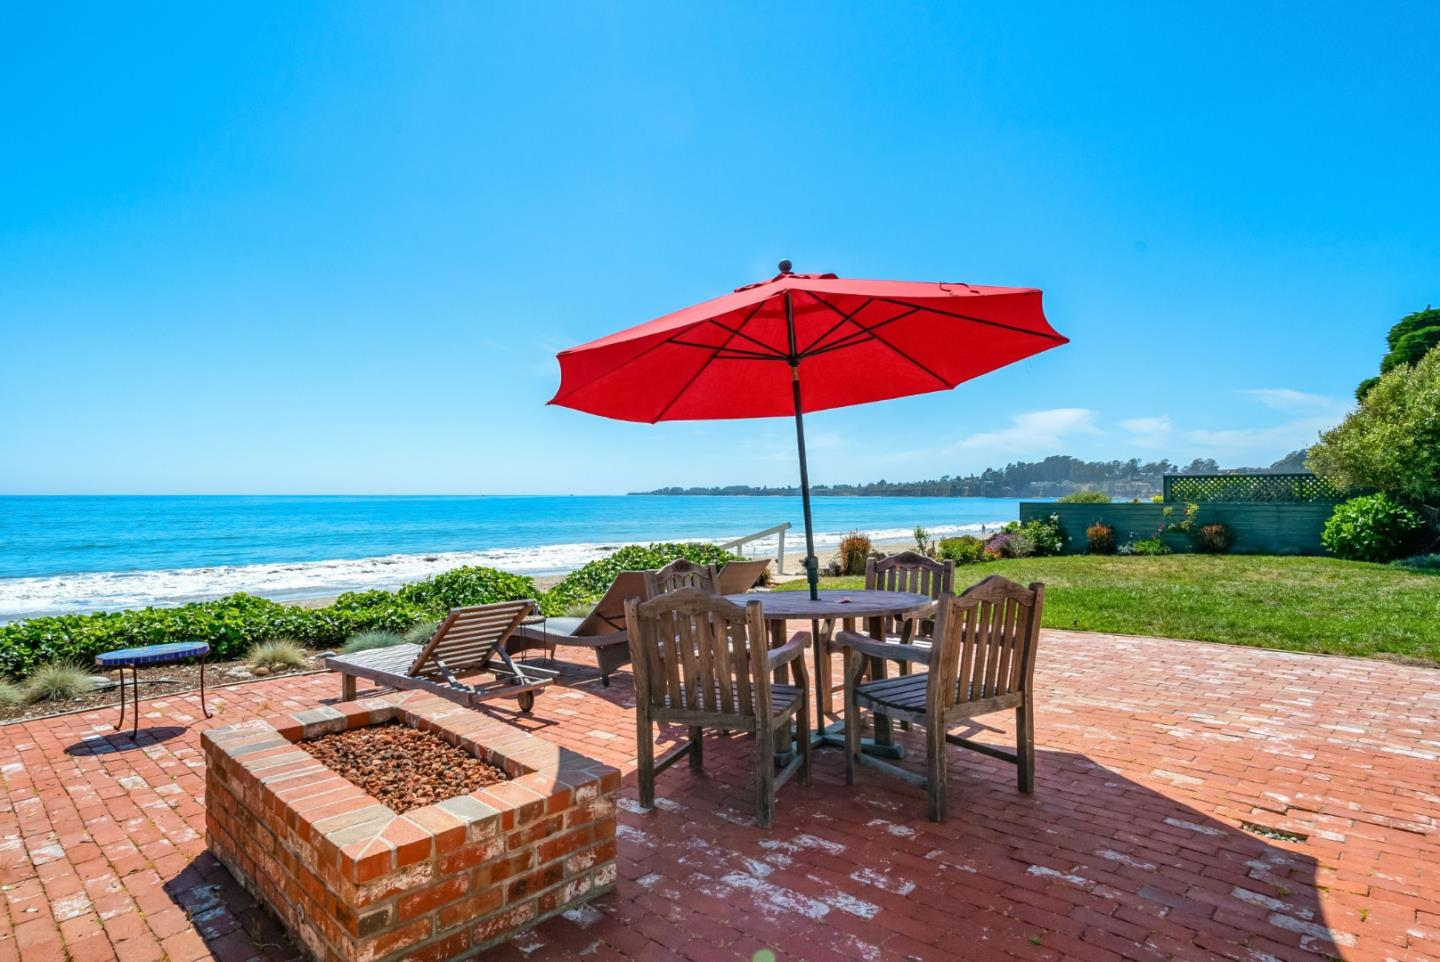 Beach front living for you and your guests, just a couple dozen steps from the sand and sea  in the gated Las Olas community. Relaxing on the brick patio with a book, or enjoying a sunset cocktail before a walk on the beach  all of these pleasures await you in this rare opportunity to live on the very edge of Monterey Bay, on the sand at Seacliff Beach.